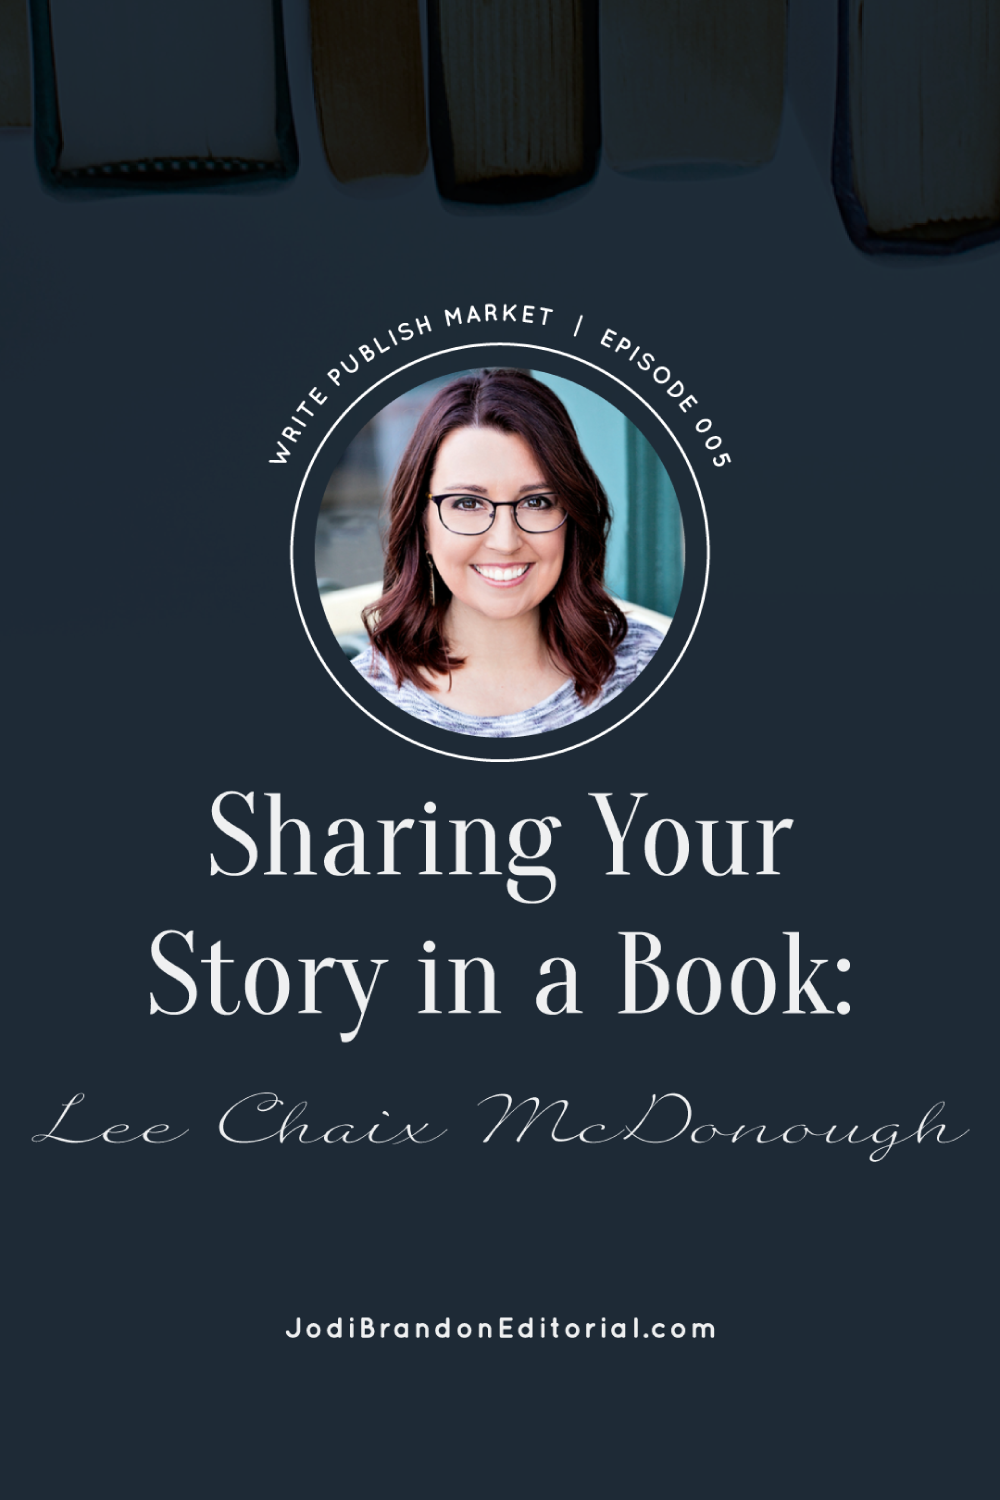 Today on the show Jodi interviews Lee Chaix McDonough, author of ACT on Your Business (2019).   |  Write Publish Market Podcast  |  Jodi Brandon Editorial